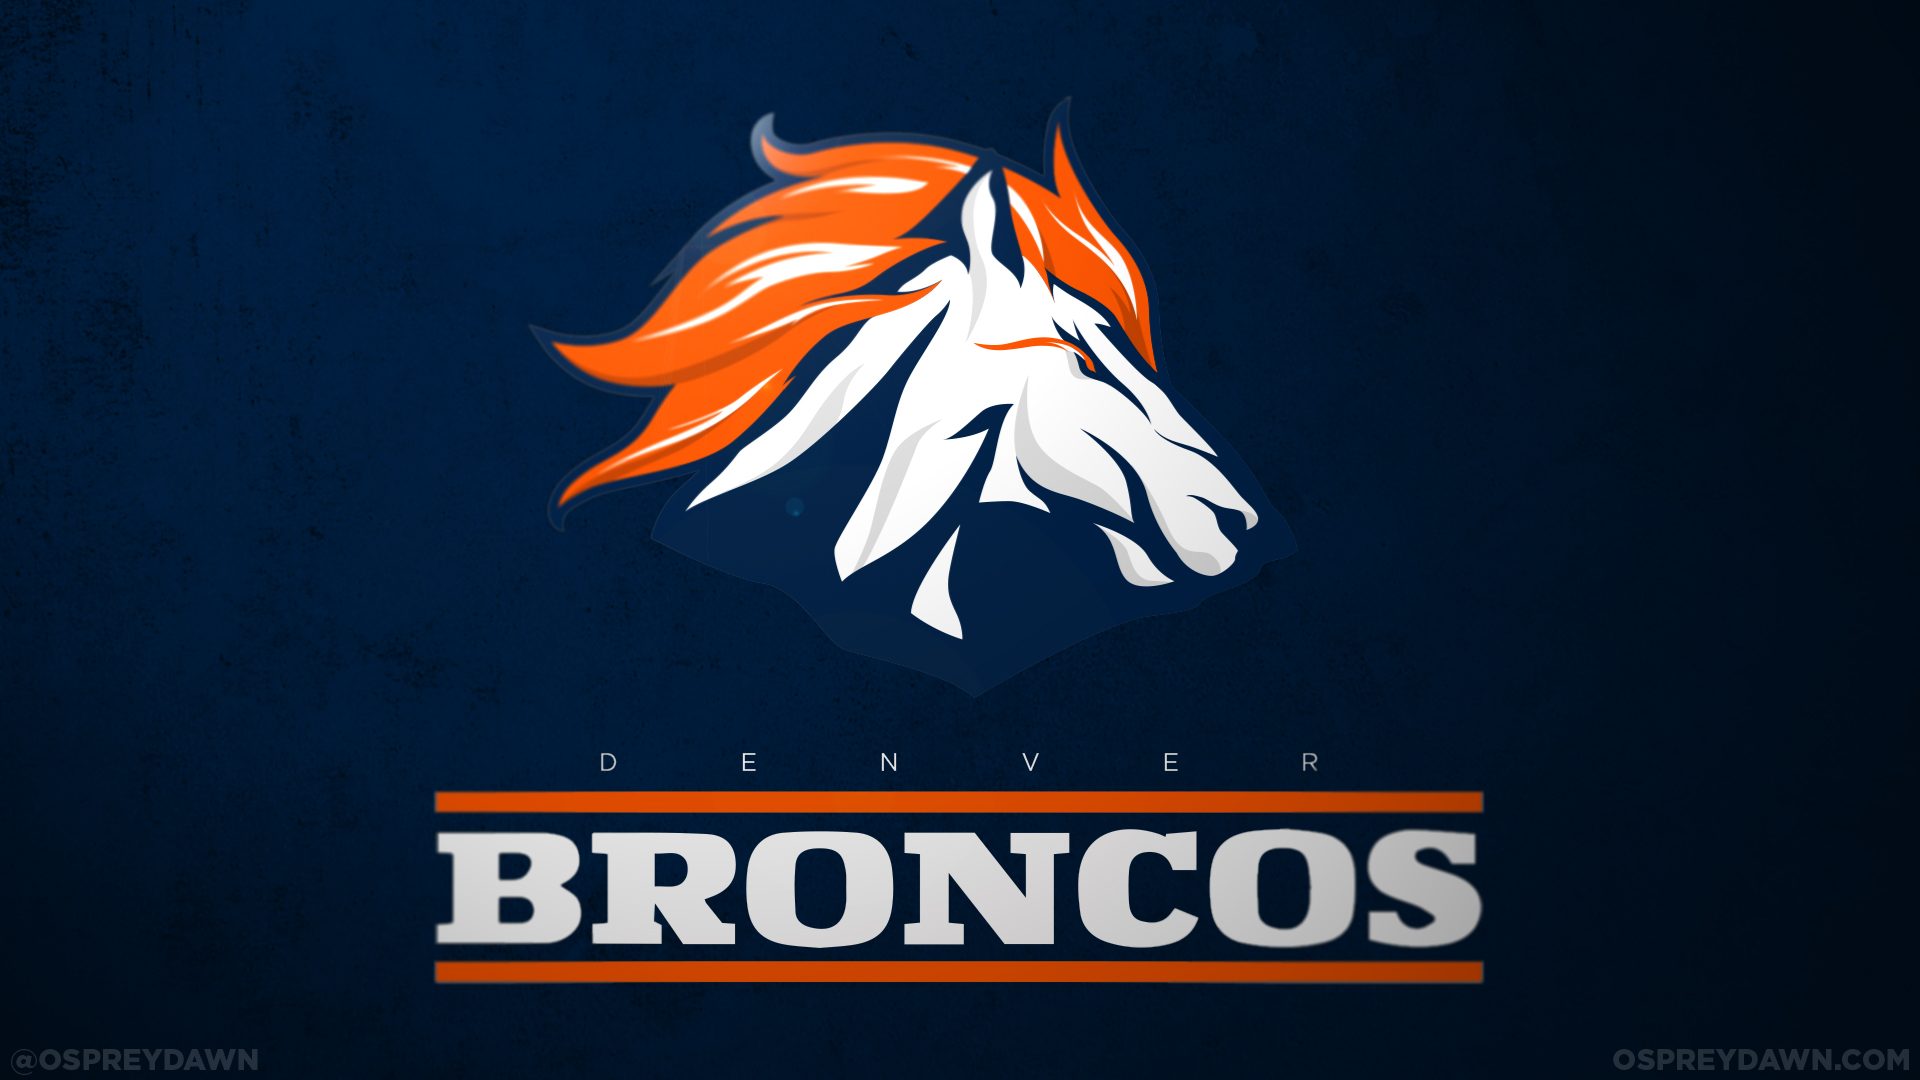 denver broncos logo The denver broncos osprey dawn jpg